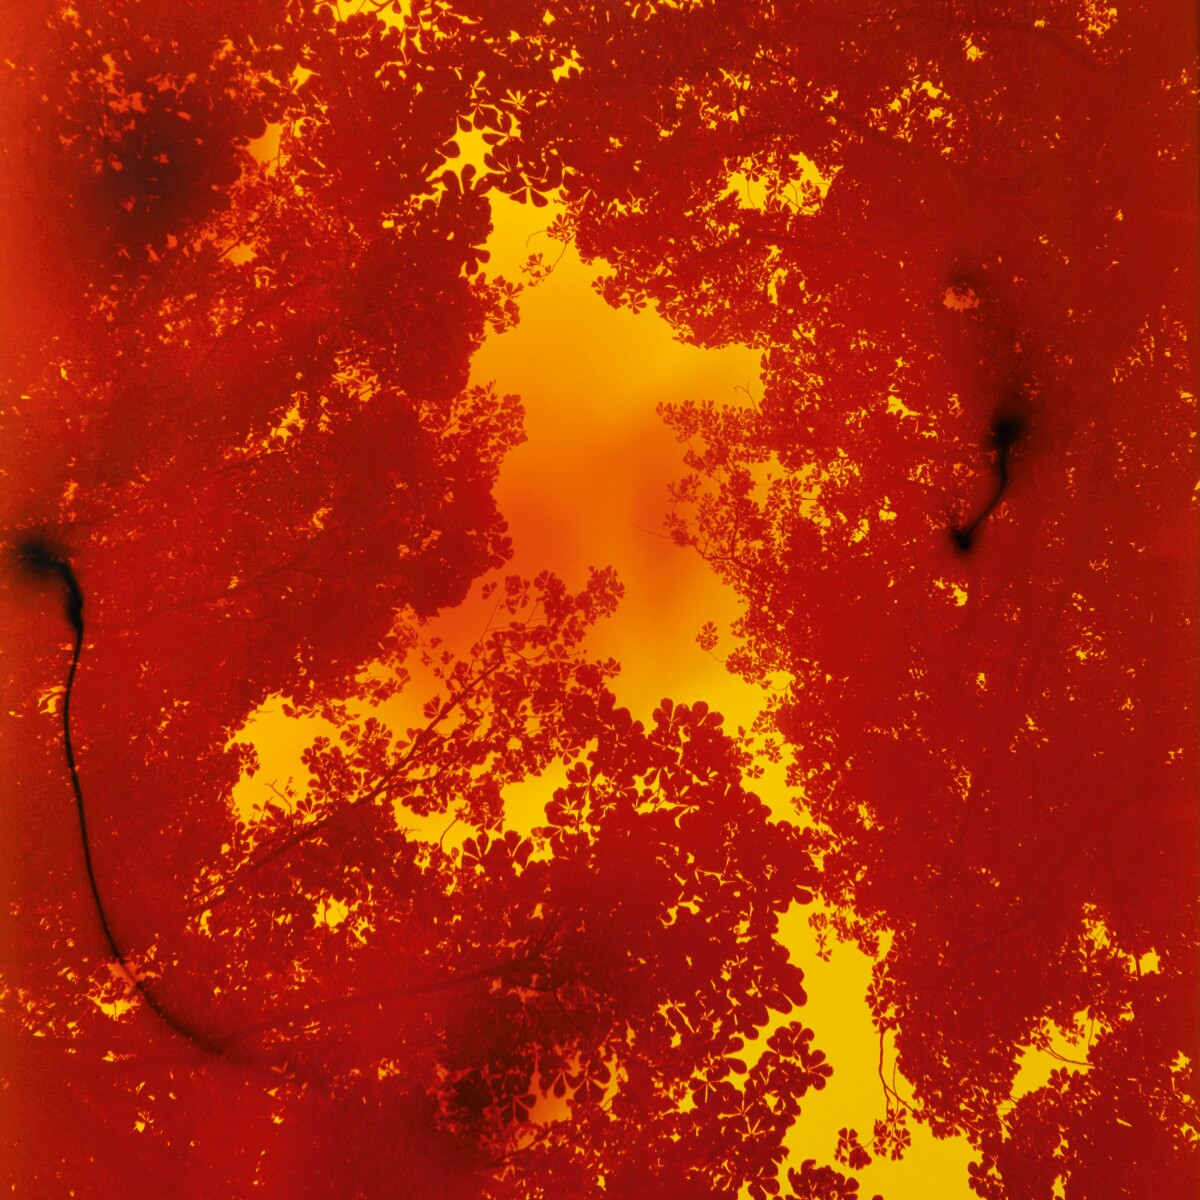 Wolfgang Tillmans Poetic Abstraction Photographs Sotheby S